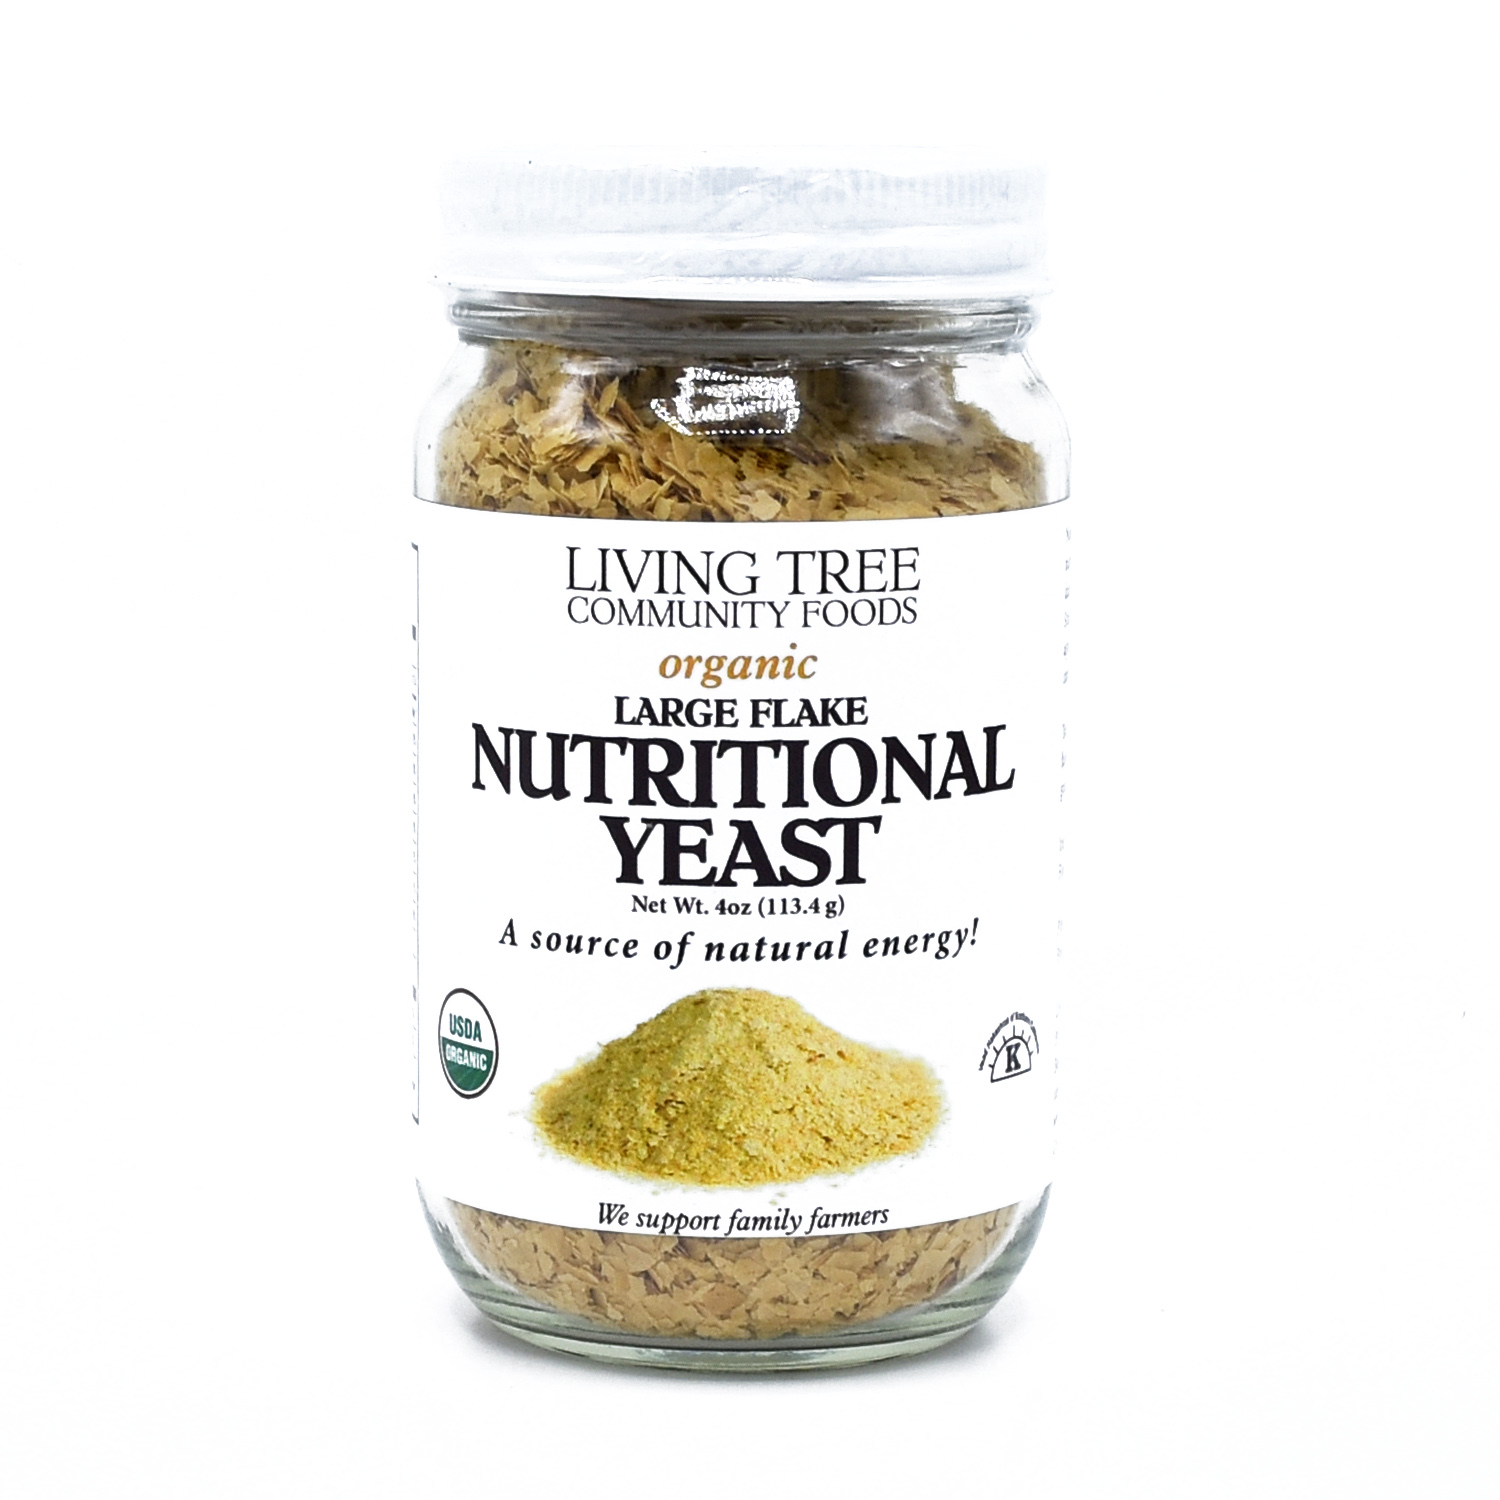 Nutritional yeast 4oz. jar